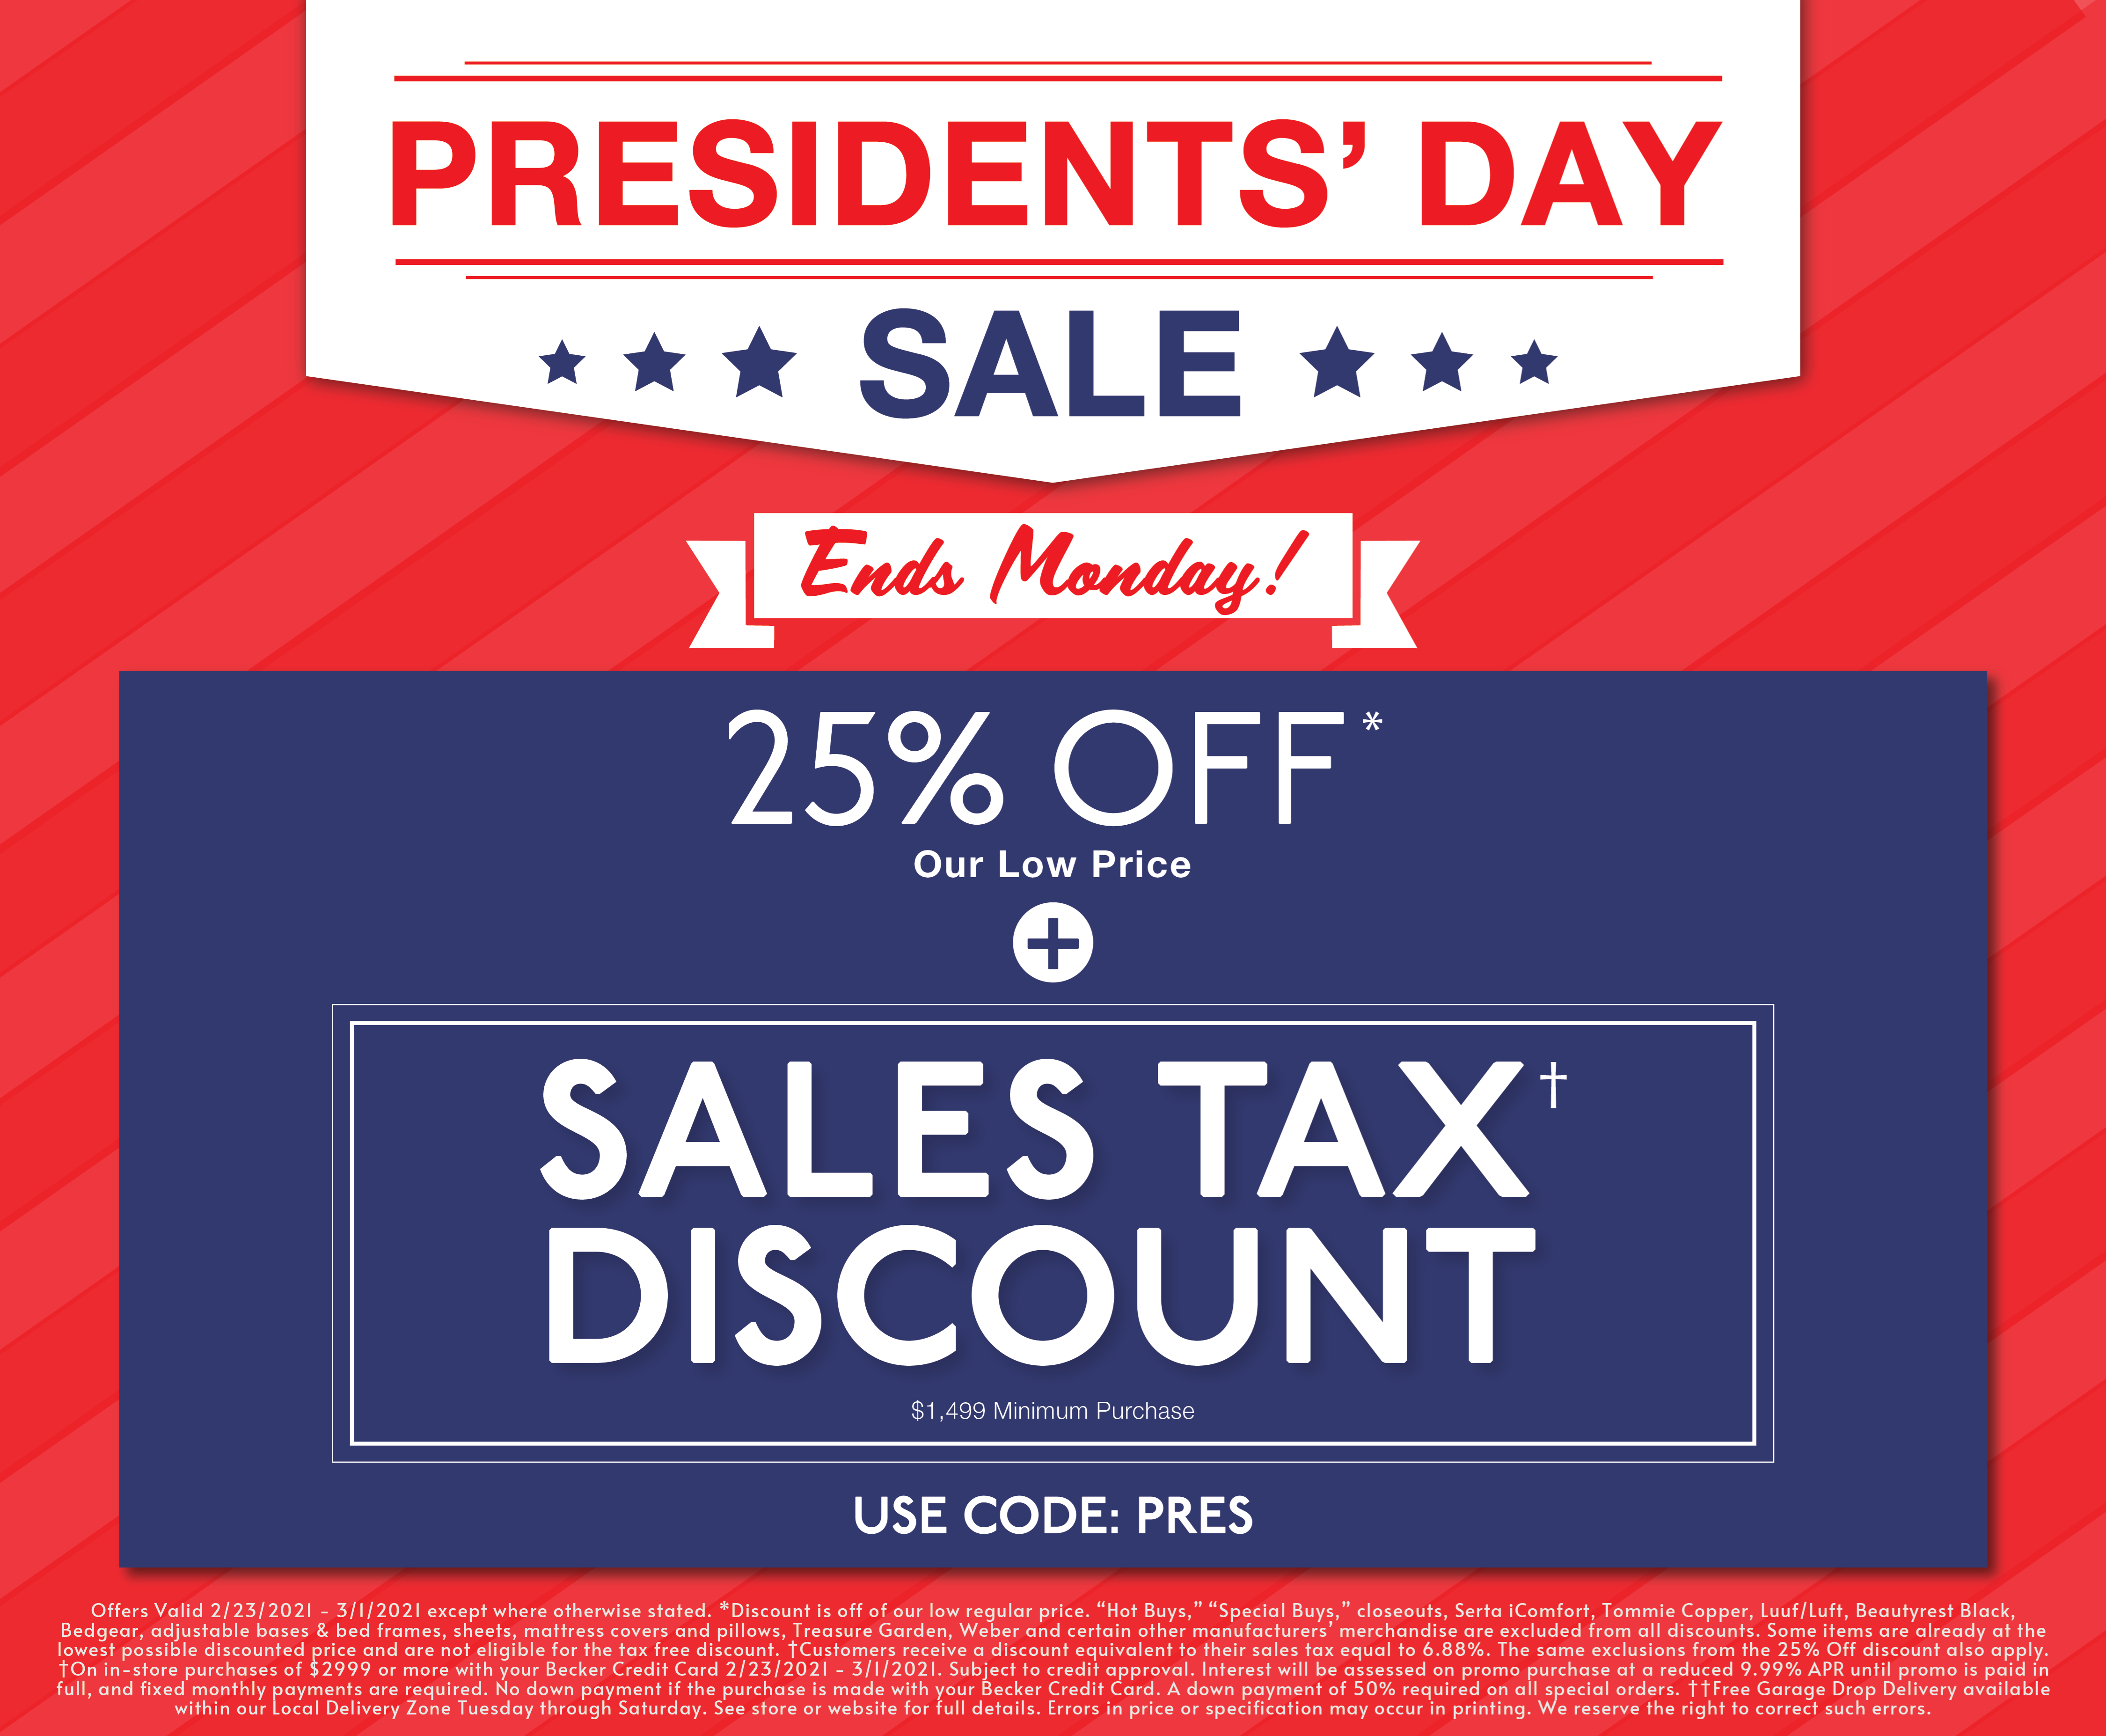 Presidents Day Sale Ends Monday